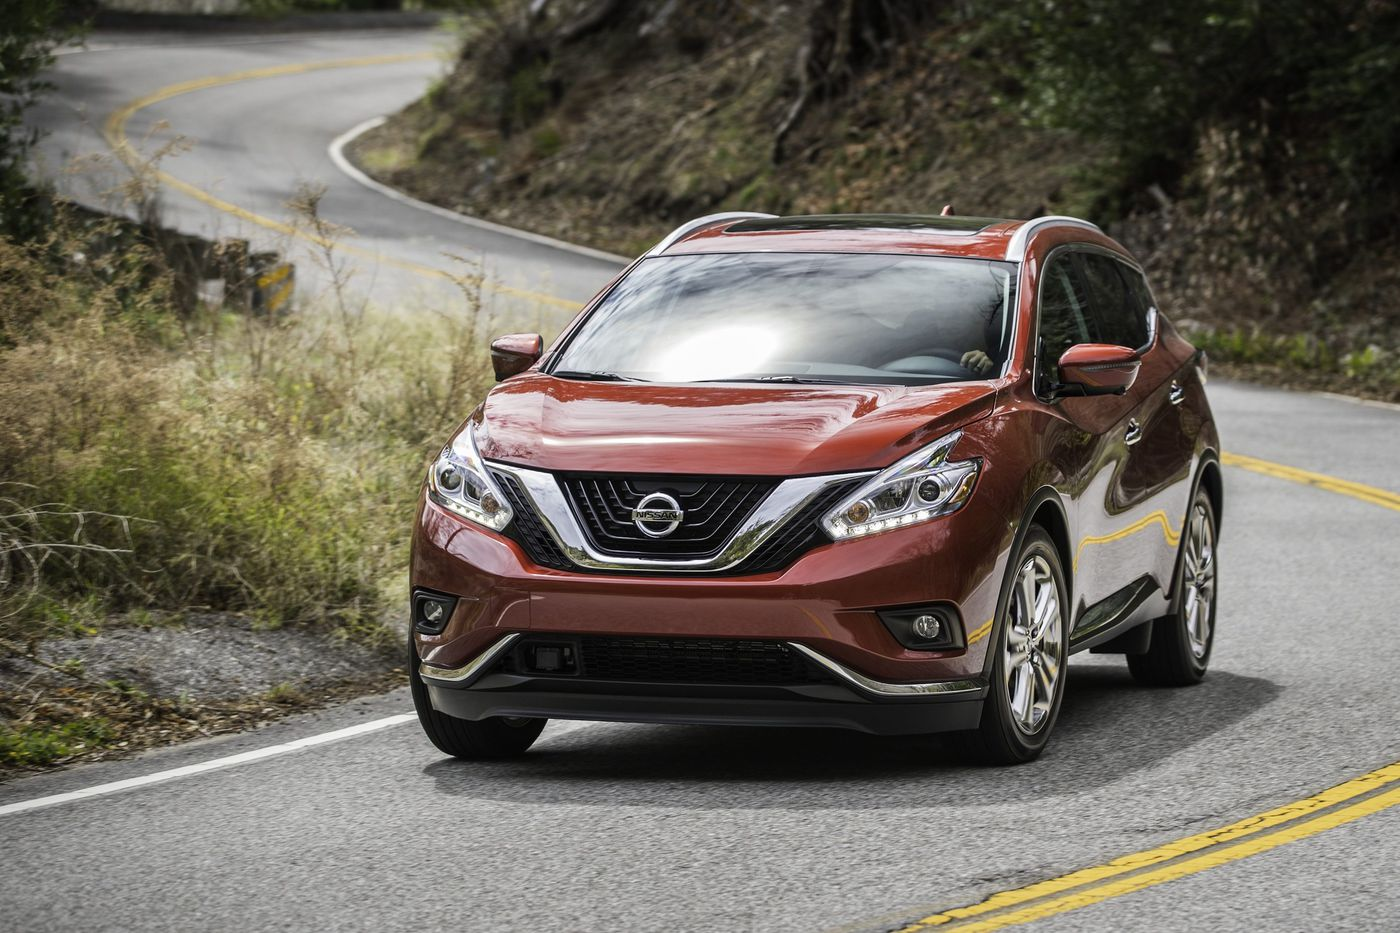 Stylish 2018 Nissan Murano disappoints on the curves | Scott Sturgis